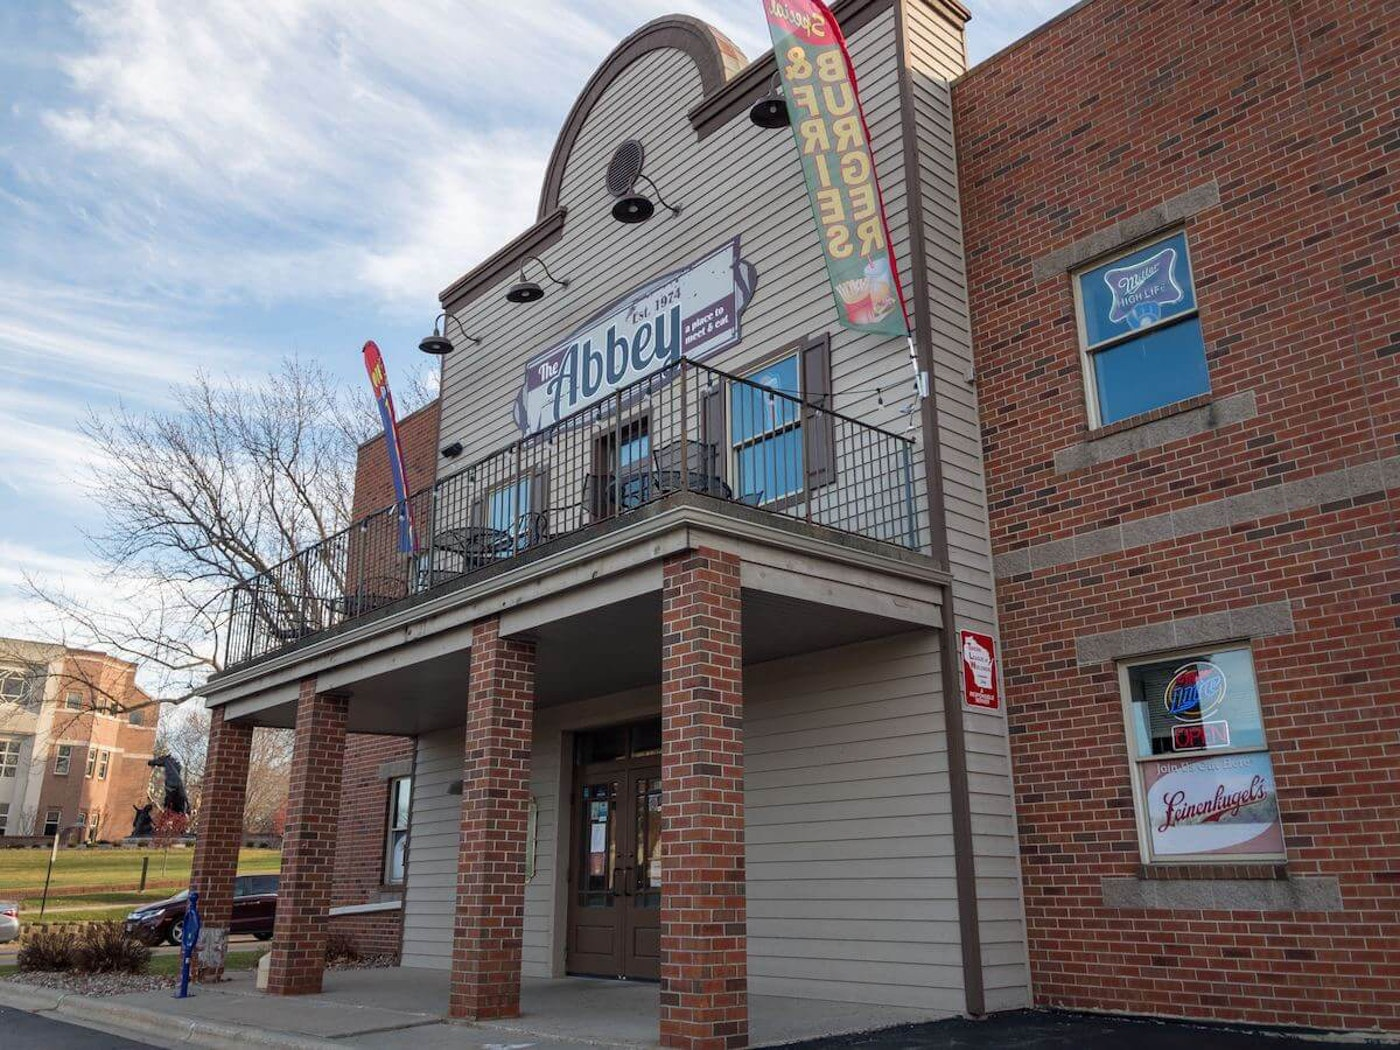 The Abbey, a neighborhood sports bar and restaurant in De Pere, has become an institution among St. Norbert College students, alumni, faculty, and staff. (Photo by Christina Liefrring)